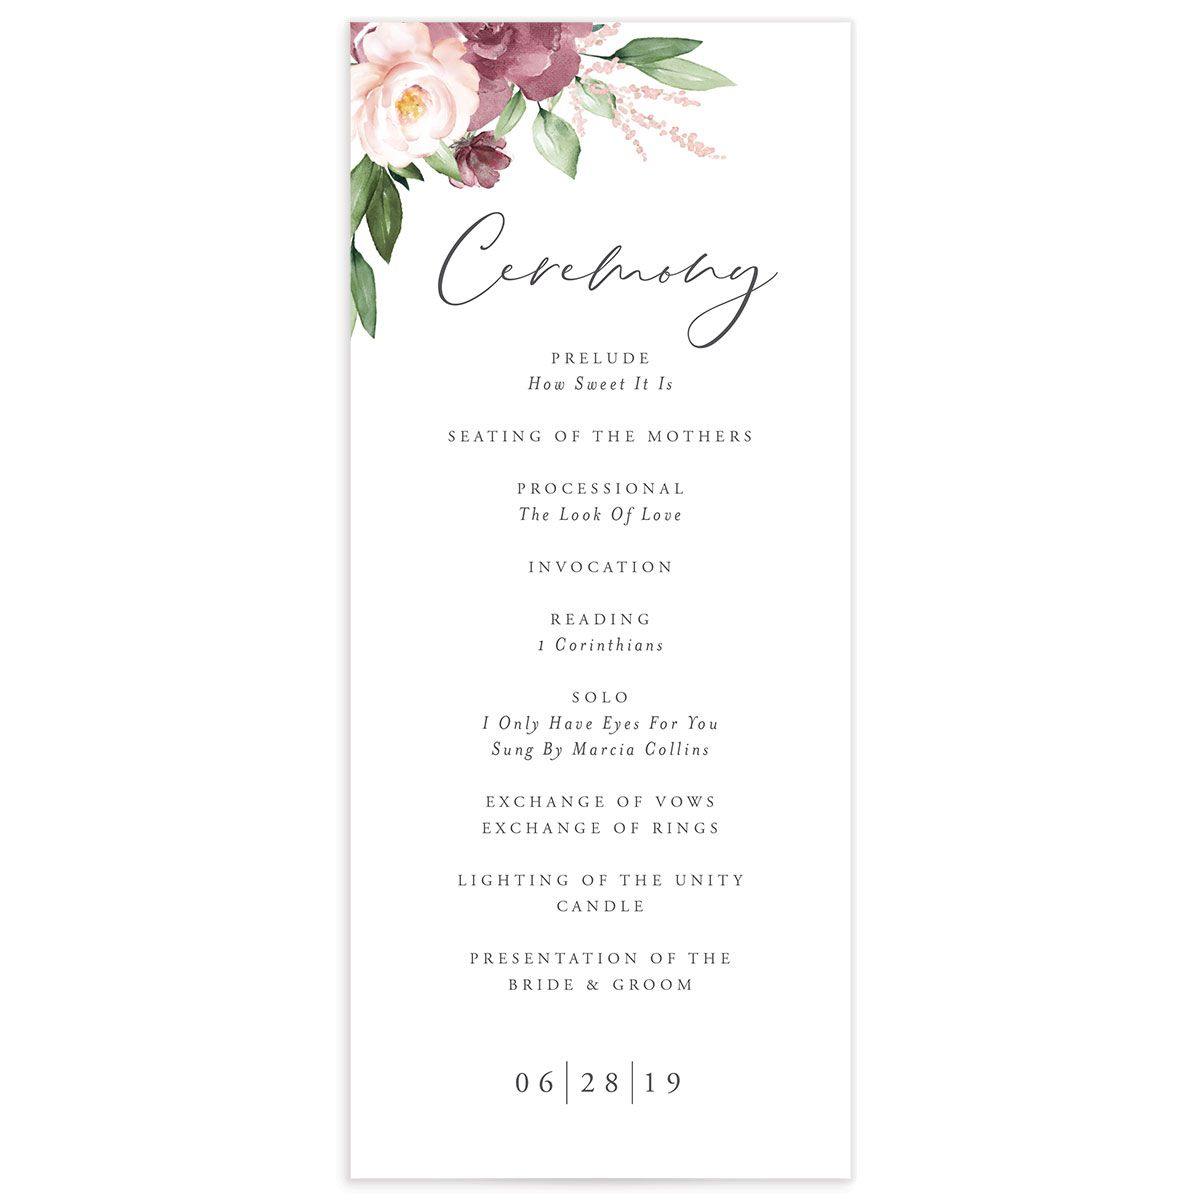 Beloved Floral Ceremony Programs in purple